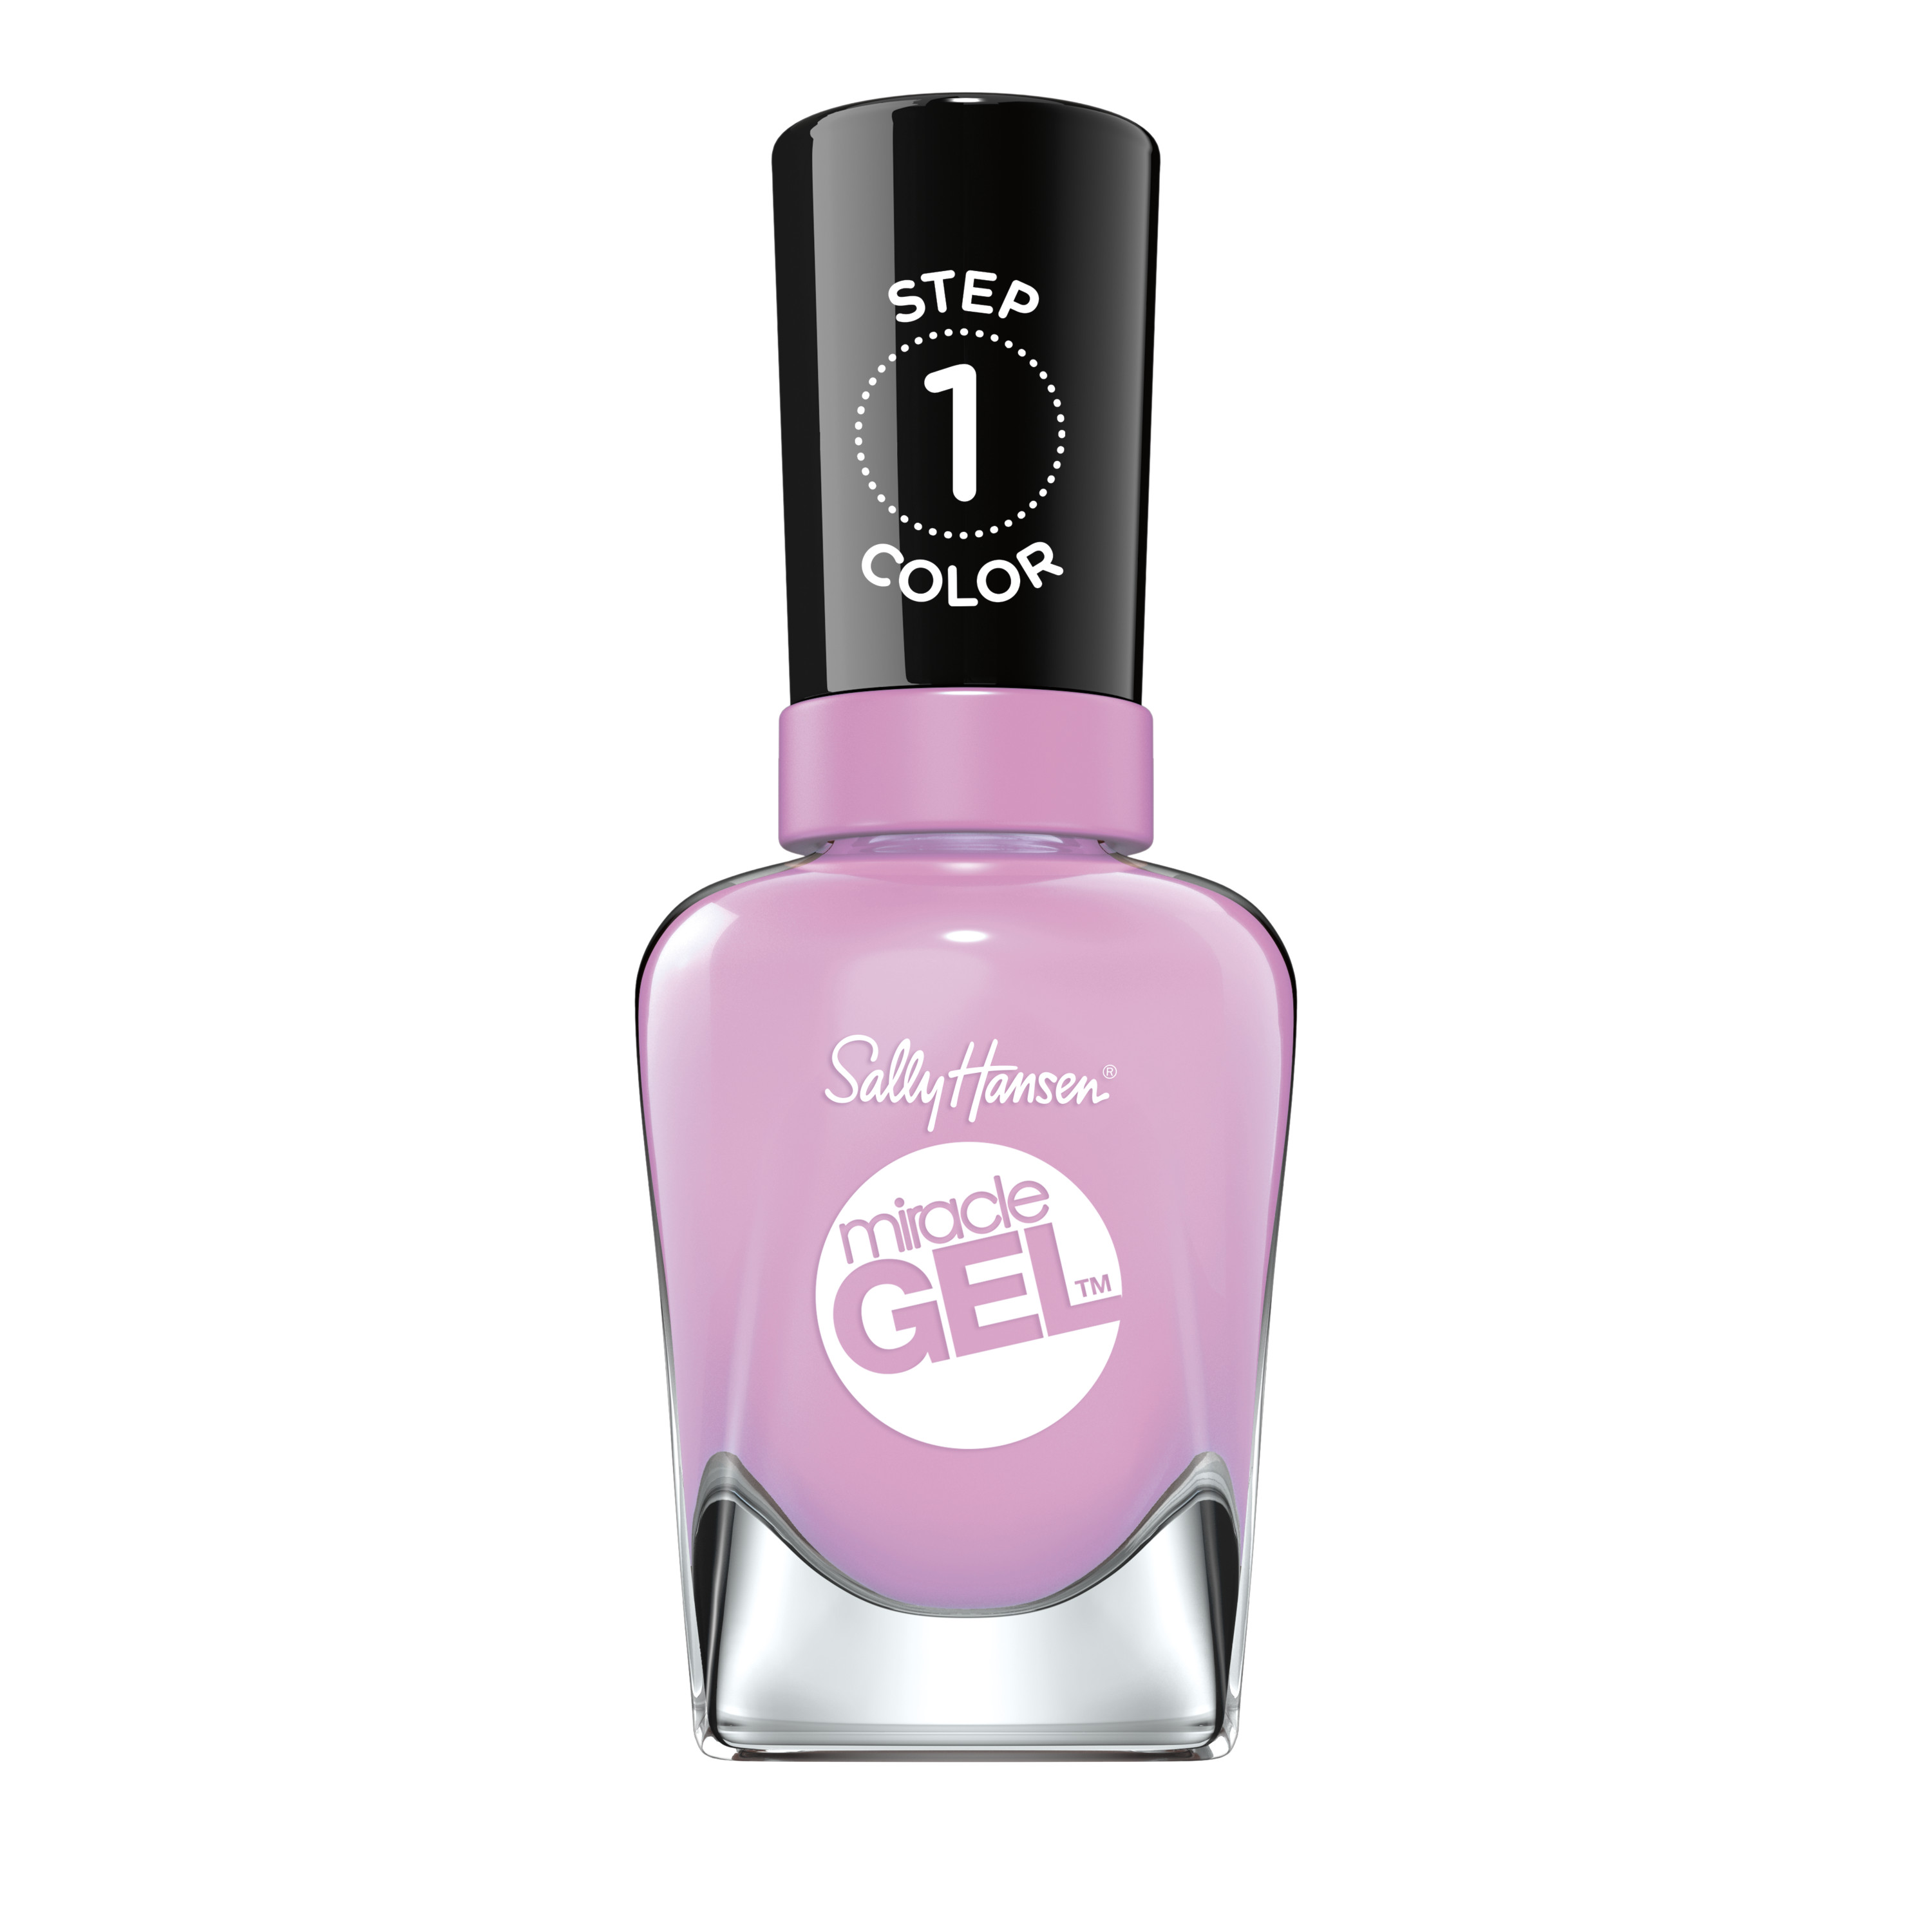 Sally Hansen Miracle Gel Nail Polish - 534 Orchid-Ing Aside - 0.5 fl oz